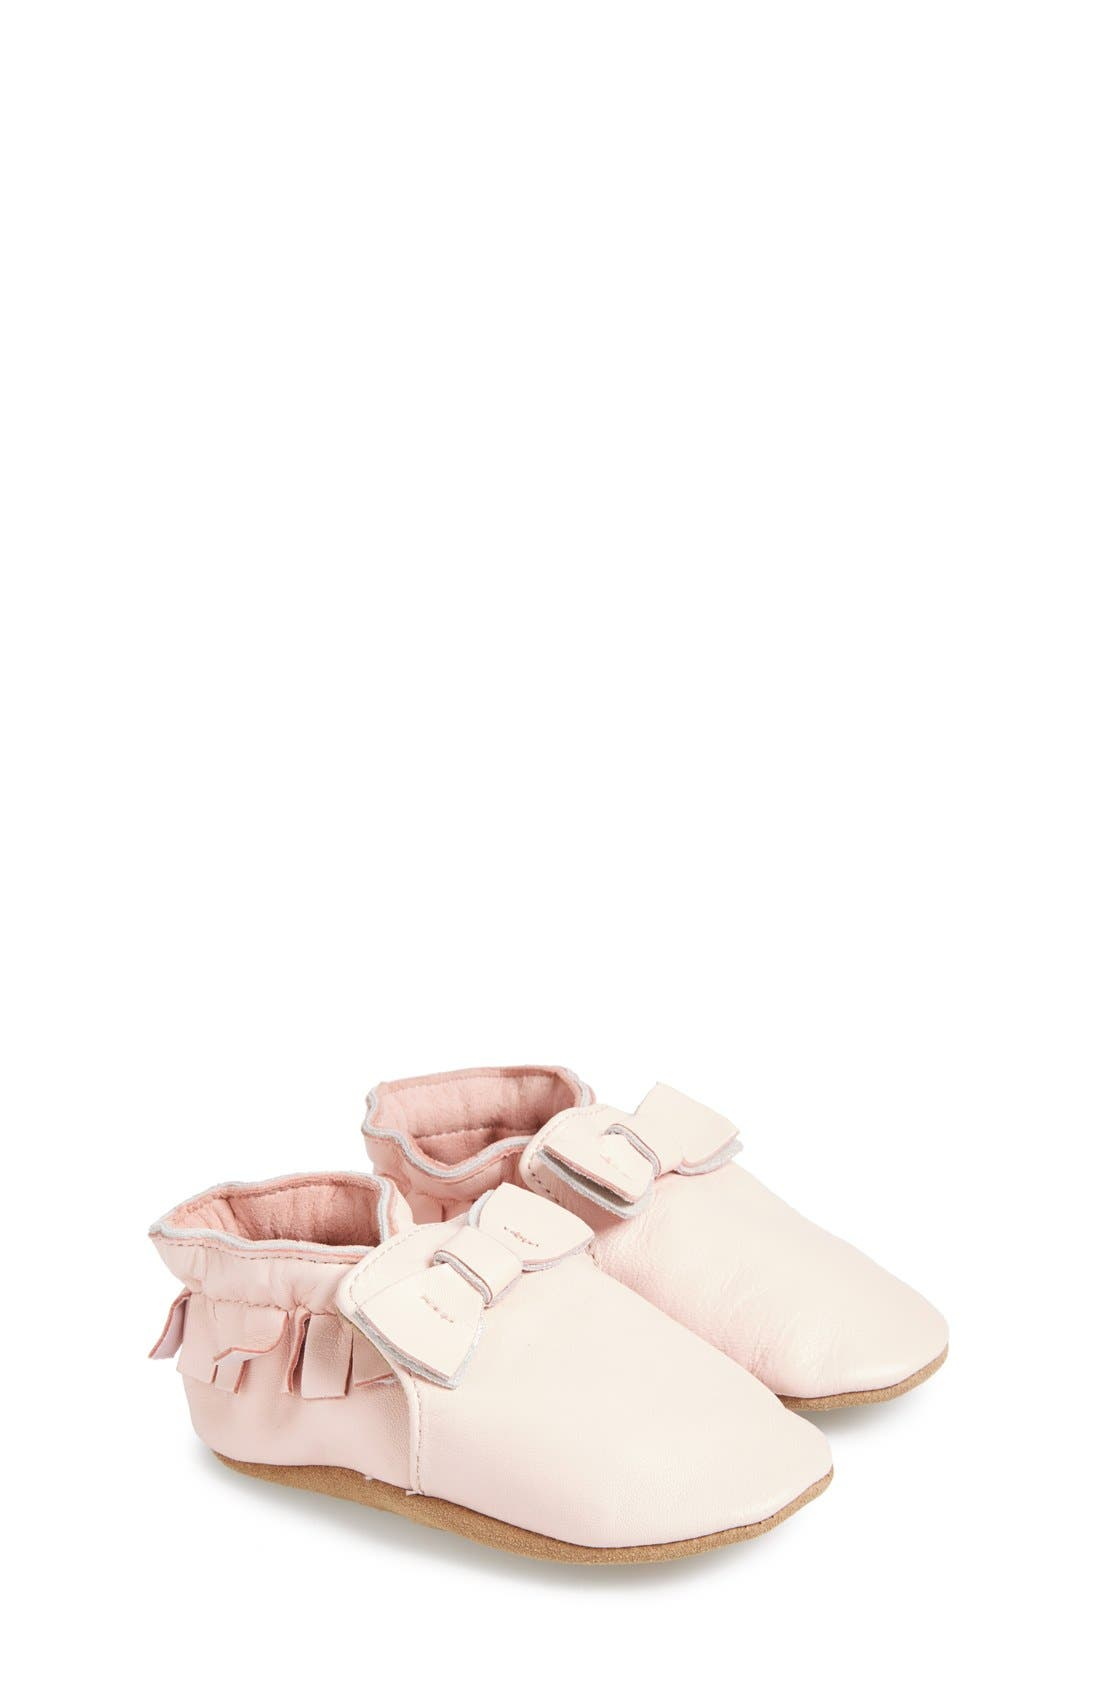 'Maggie Moccasin' Crib Shoe,                             Main thumbnail 1, color,                             Pastel Pink